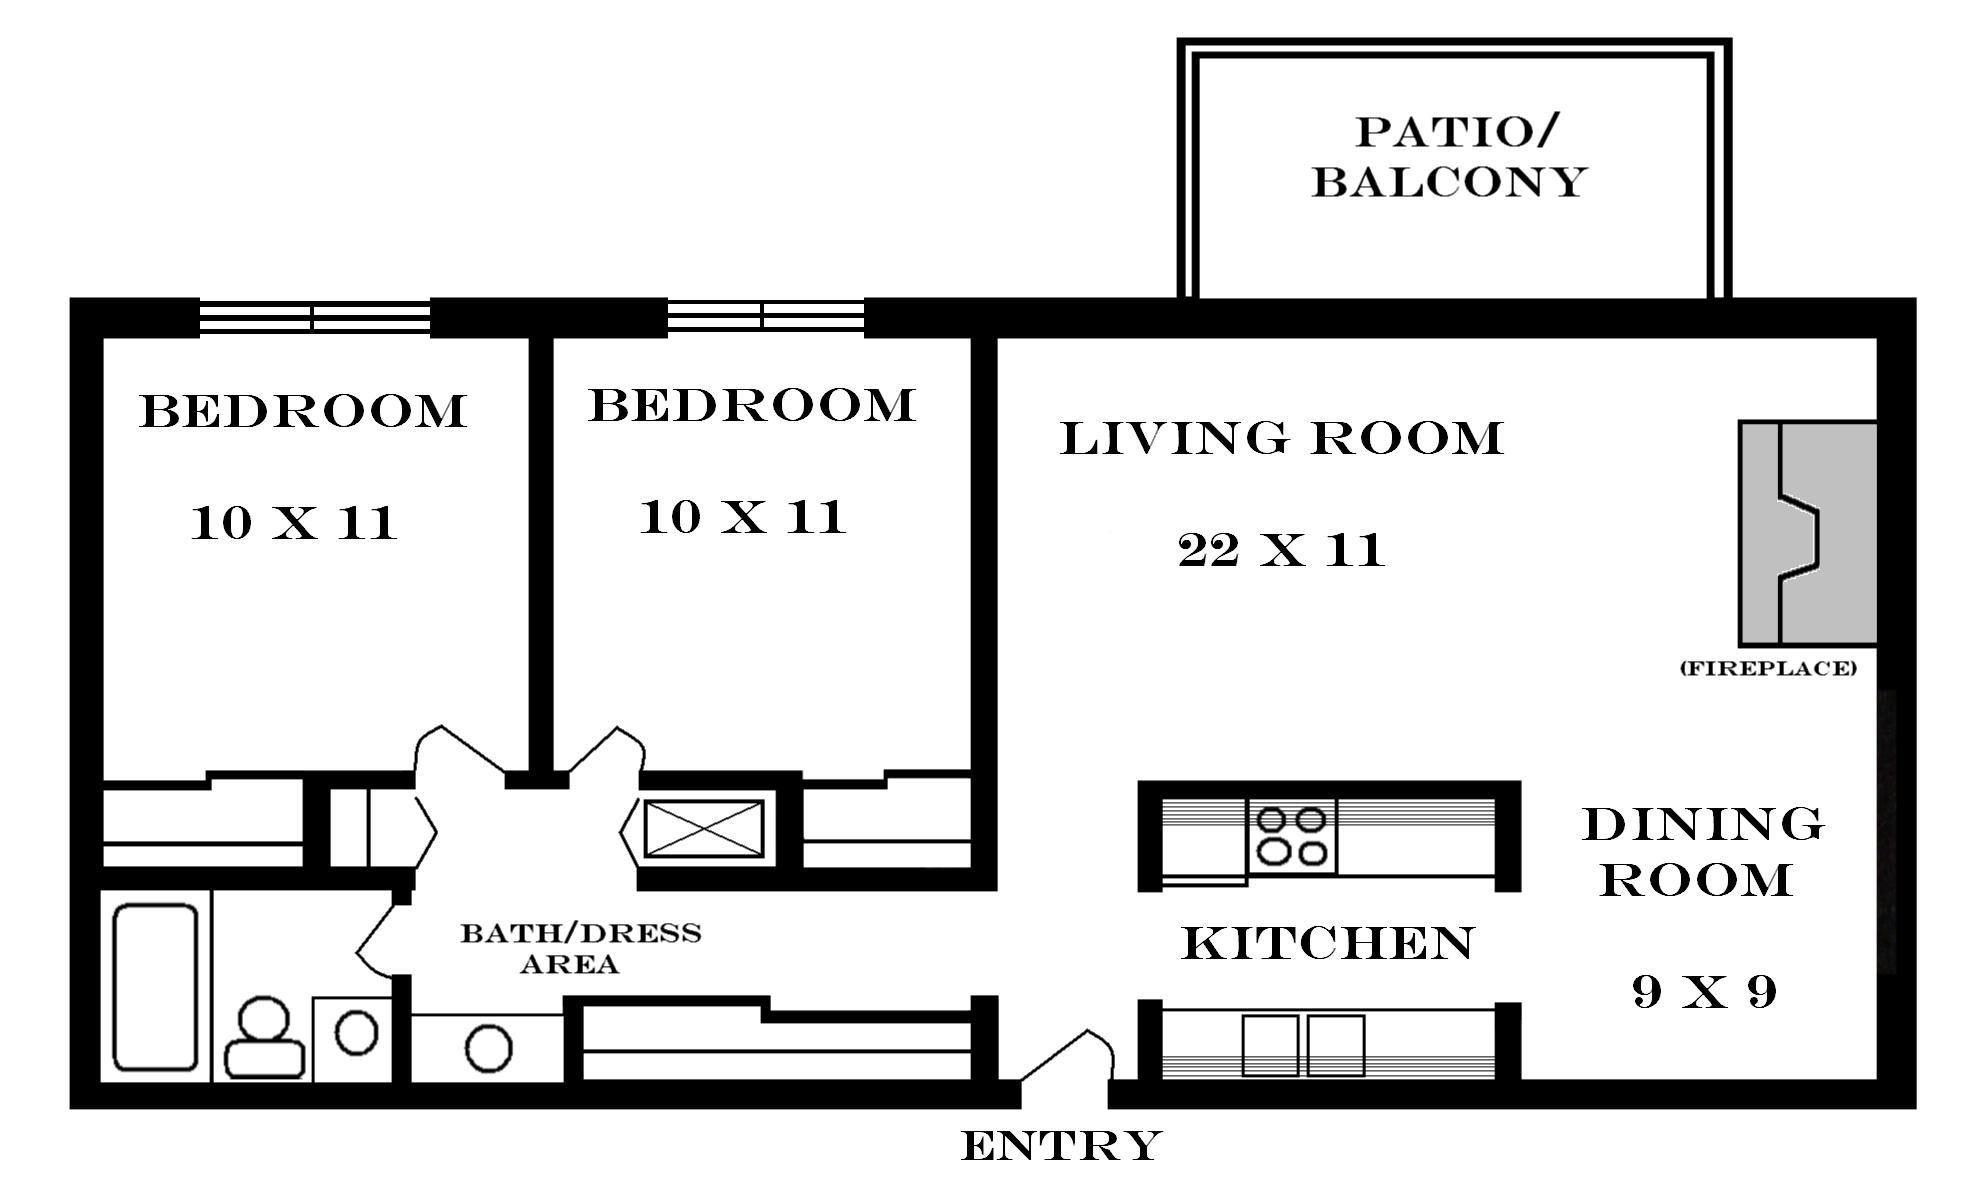 Small house floor plans 2 bedrooms 900 tiny houses for Studio apartment blueprints